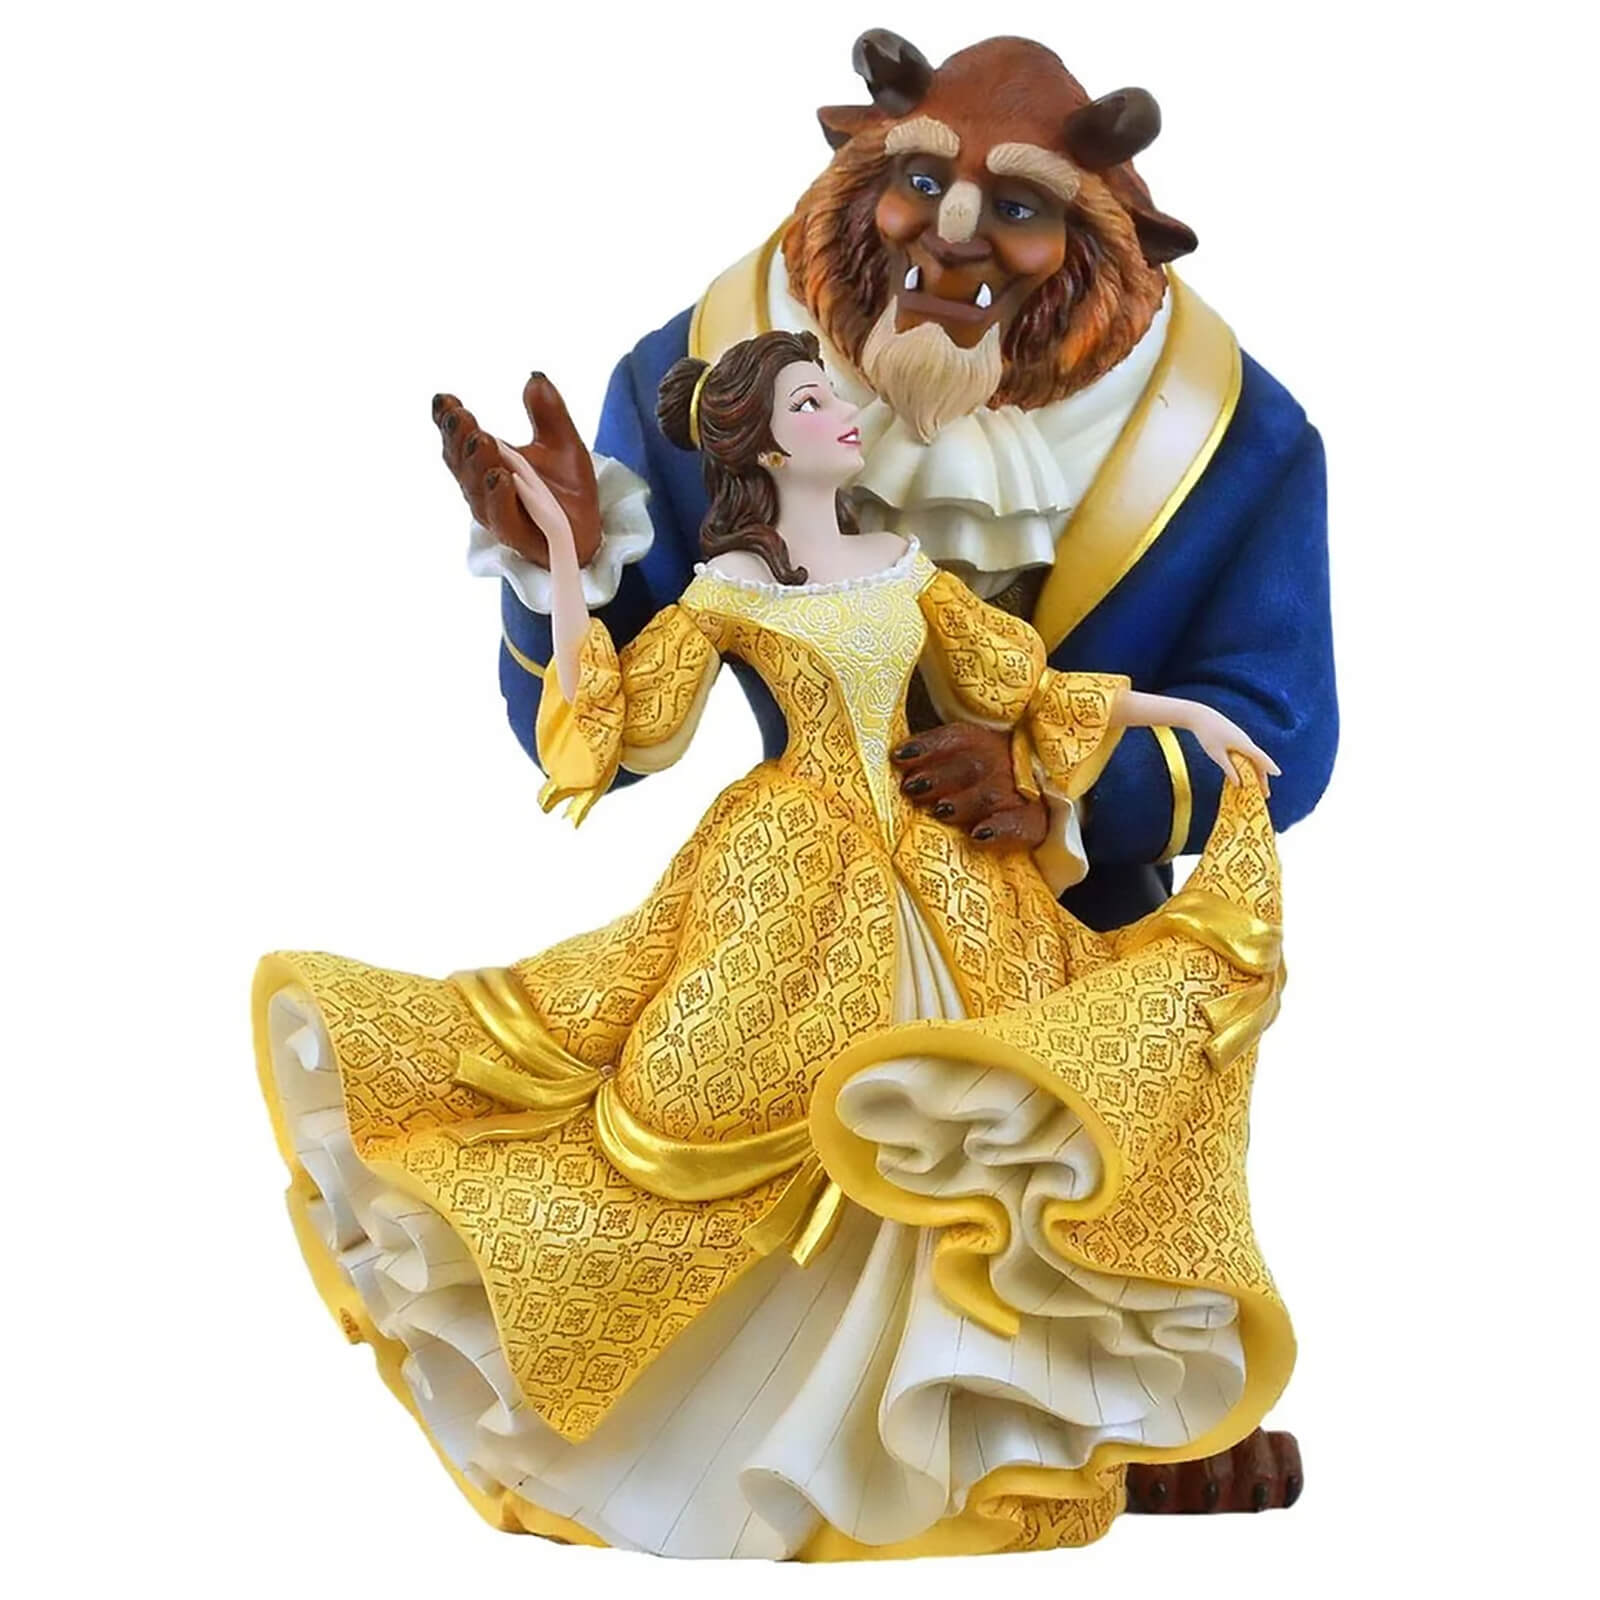 Image of Disney Showcase Collection Beauty and the Beast Figurine